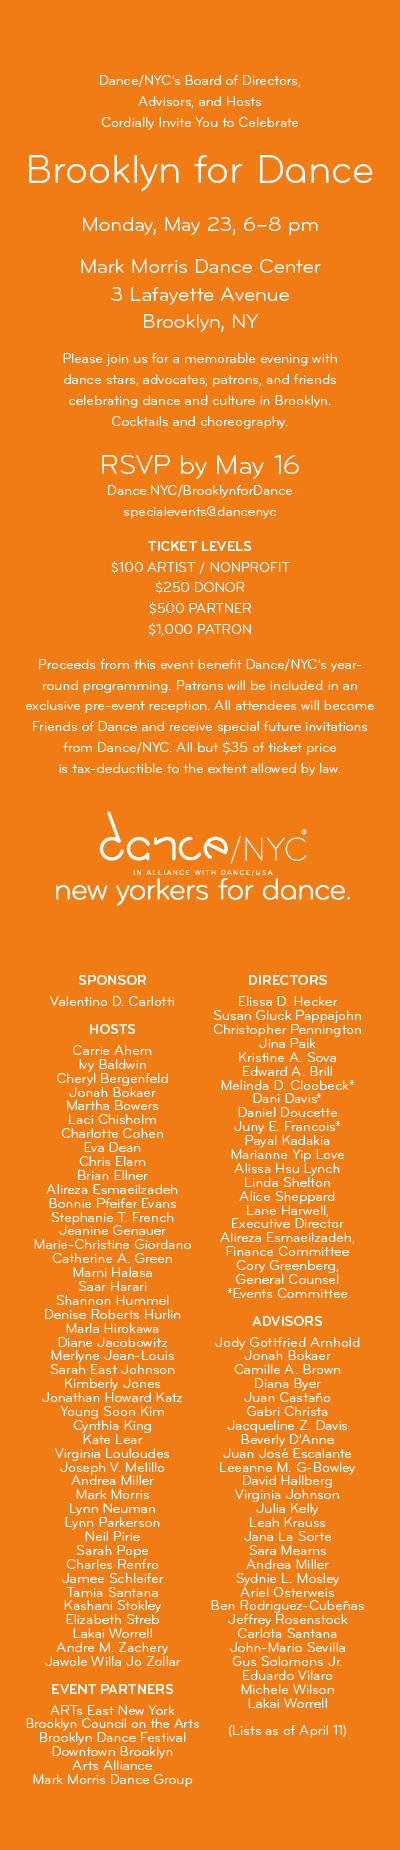 DanceNYC-Invite-May23-Emailable.jpg